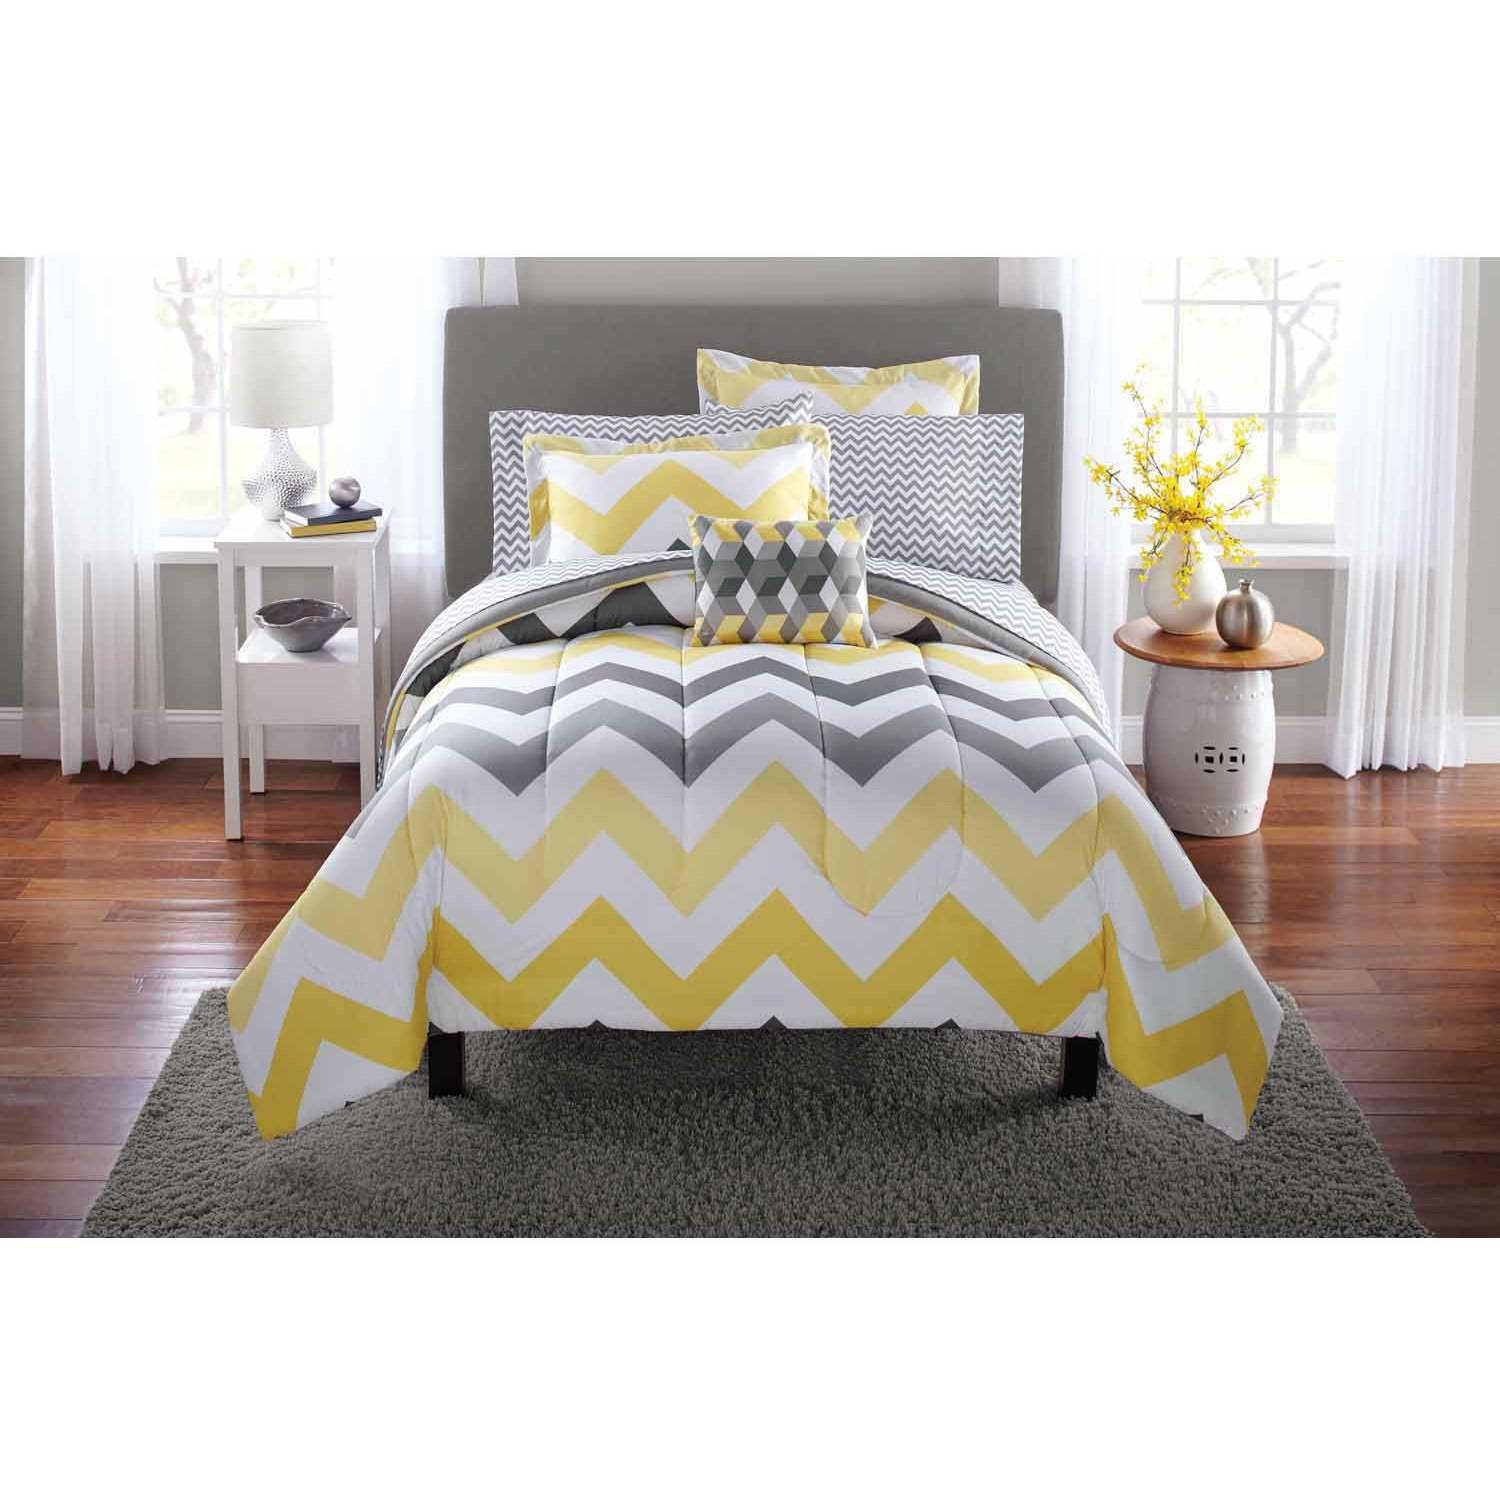 gray grey that damask bed feminine white modern bedding pop and make your will bedroom yellow